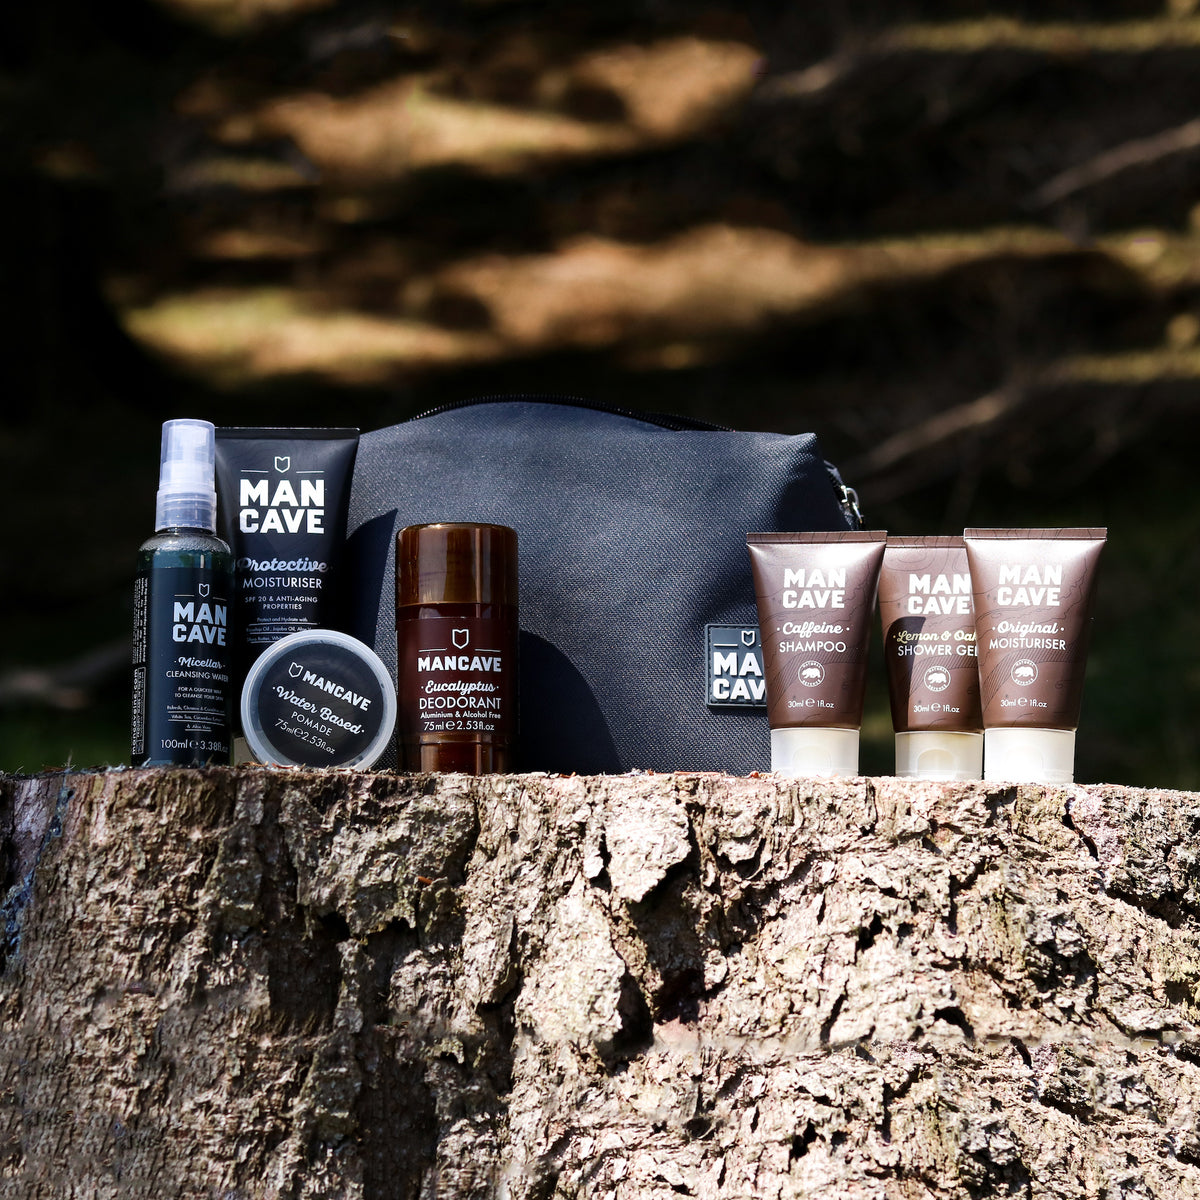 ManCave Grooming Gear - Naturally Derived Formulas For Men